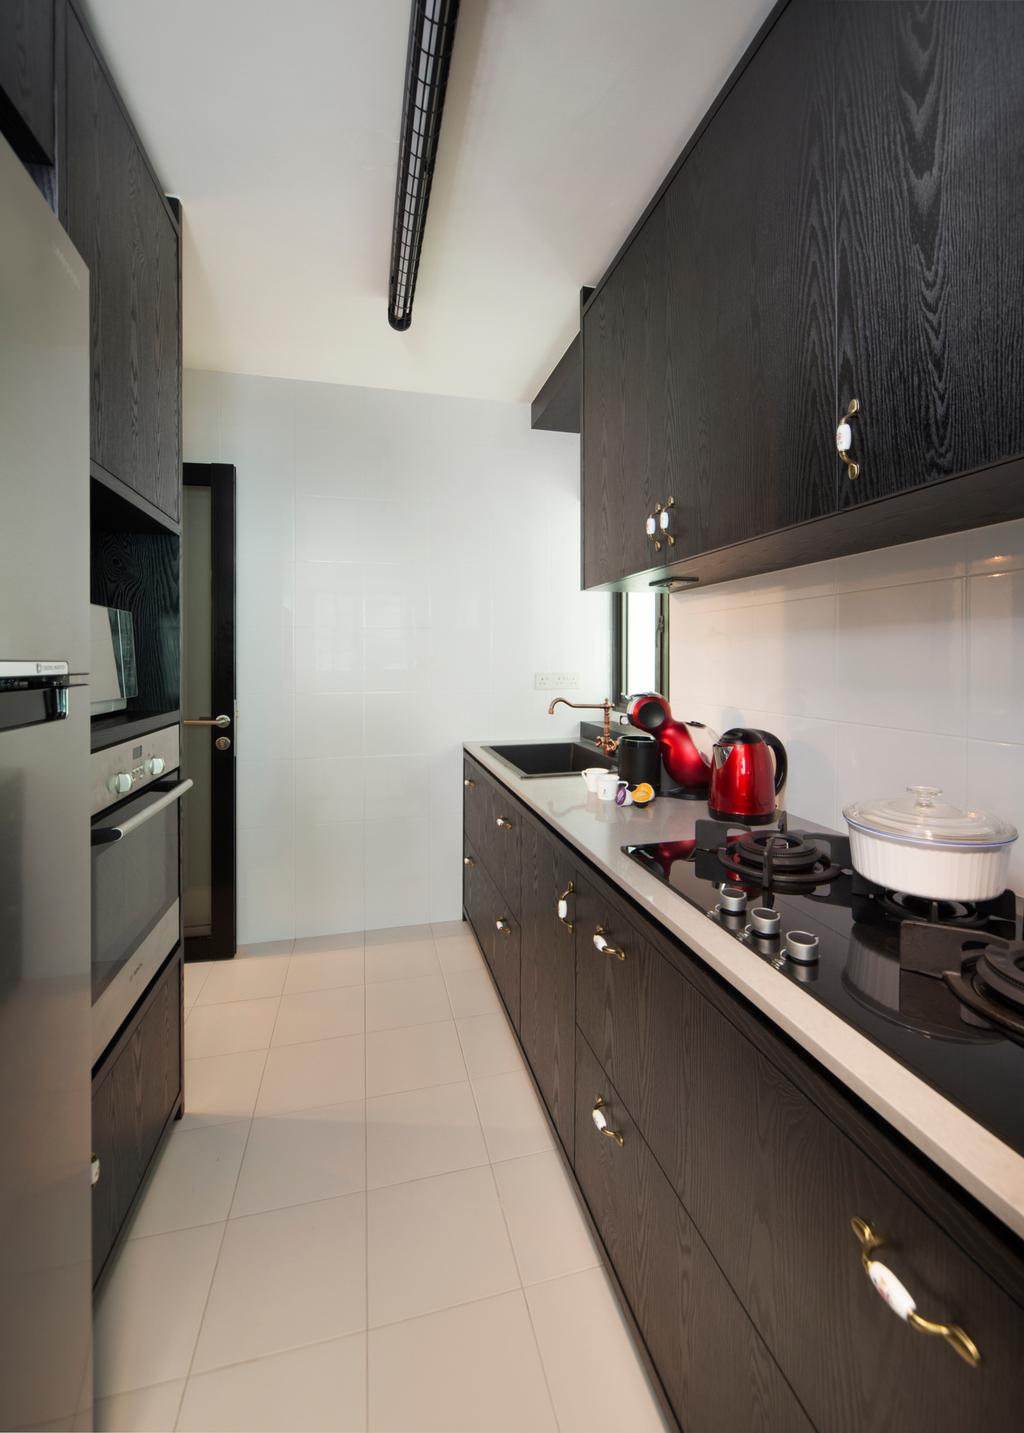 Eclectic, HDB, Kitchen, SkyVille @ Dawson, Interior Designer, The Scientist, Gallery Kitchen, Linear Layout, Narrow Layout, Stove, Oven, Kitchen Appliances, Fridge, Refrigerator, Simple, Appliance, Electrical Device, Indoors, Interior Design, Room